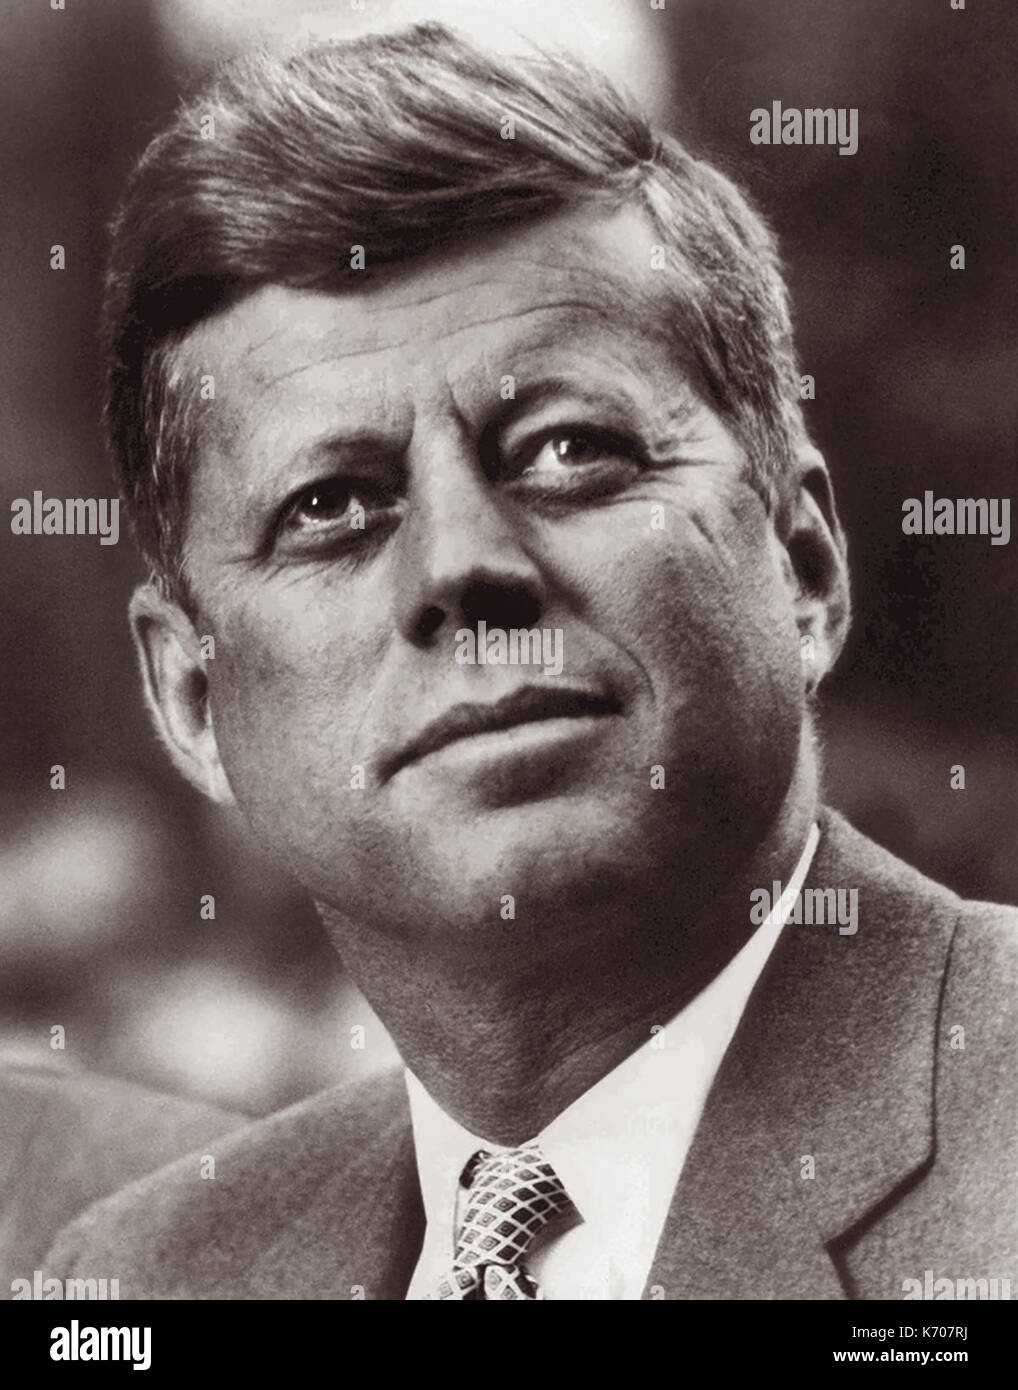 John F. Kennedy, commonly referred to as JFK, served as the 35th President of the United States from January 1961 until his assassination on November 22, 1963.  (Photo: September 6, 1960) - Stock Image